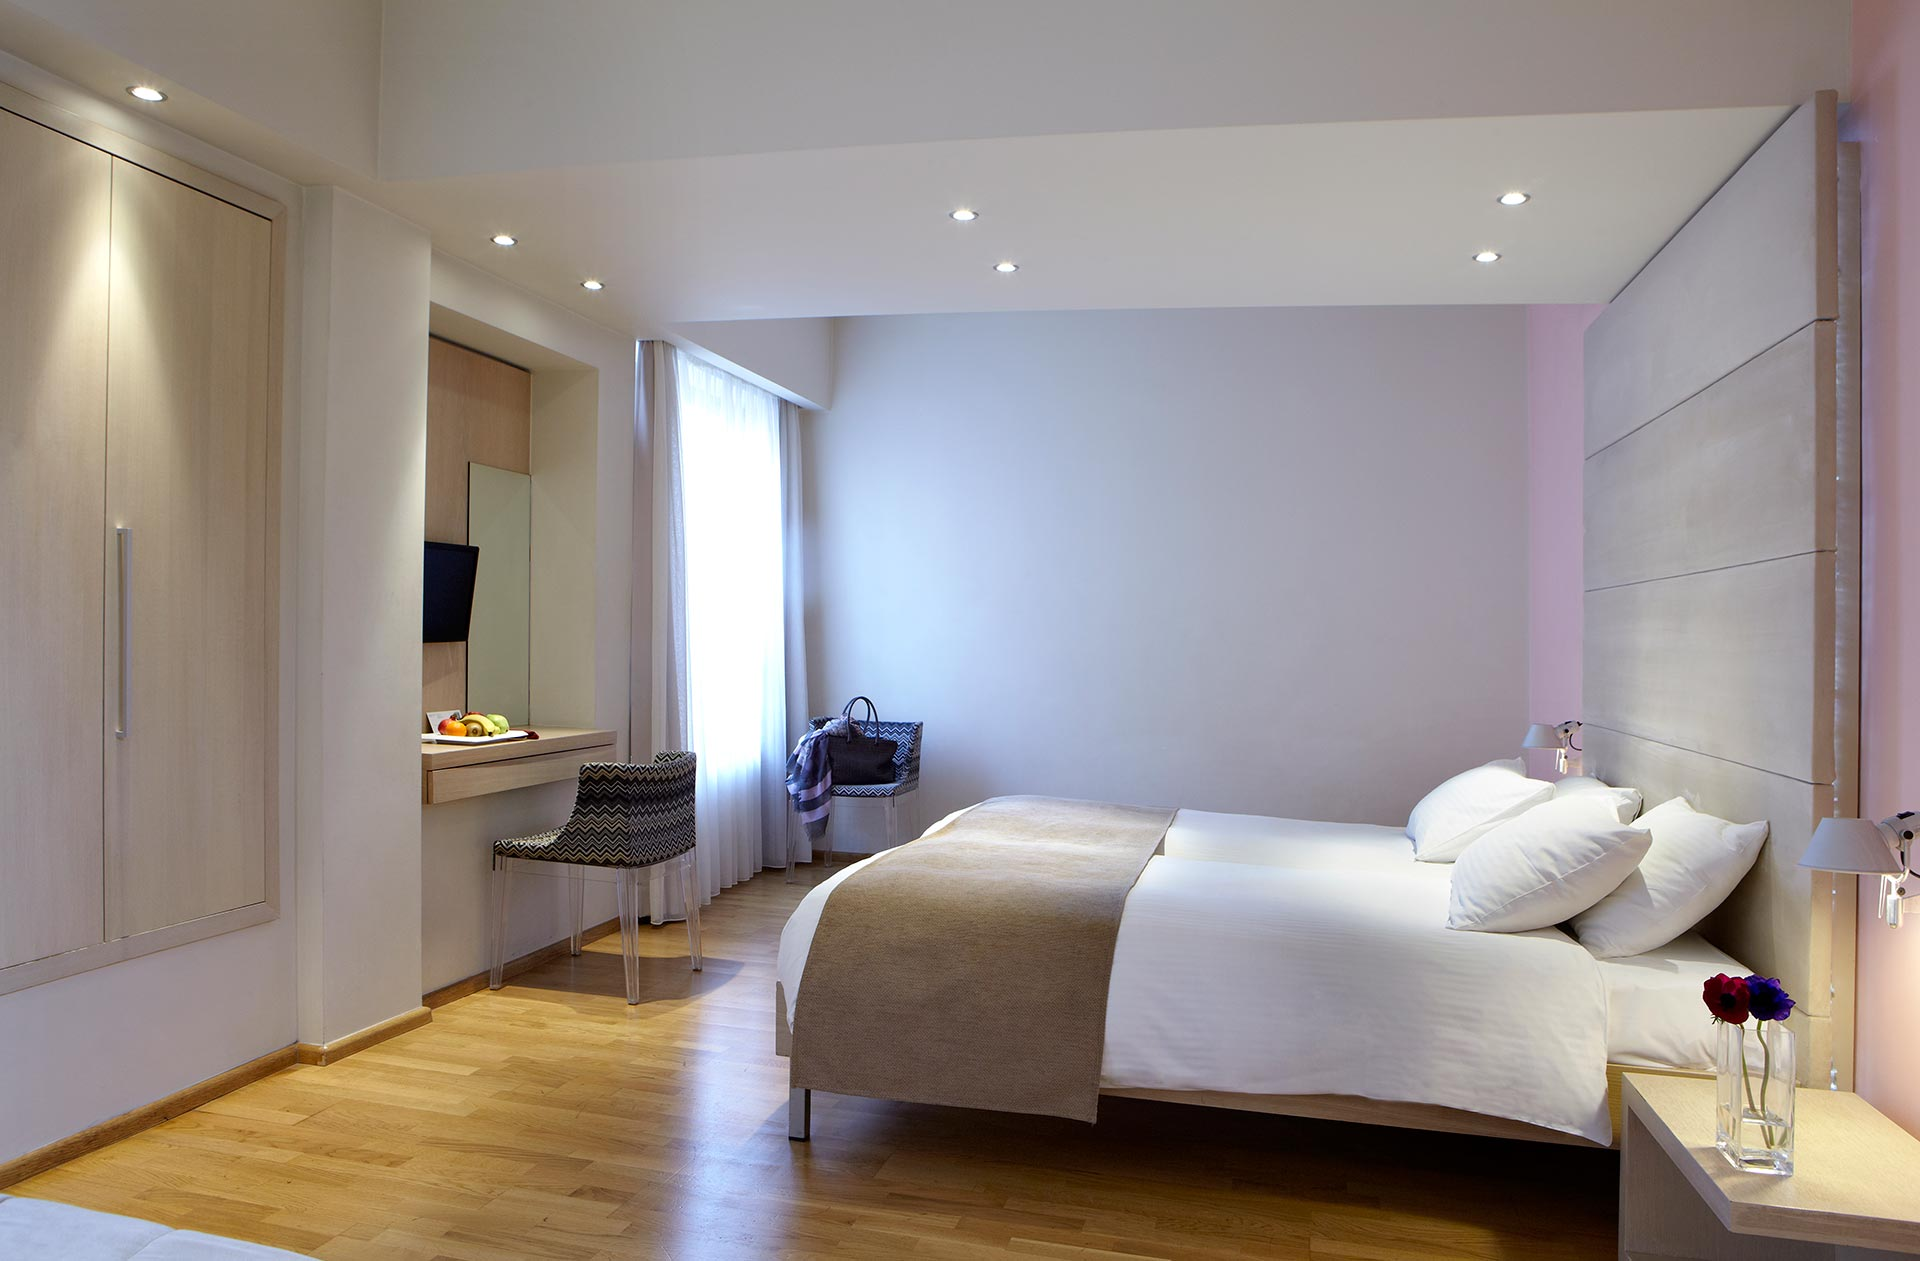 Rooms_for_the_Disabled_Amea_Decreased_Mobility_Hotel_Olympia_Thessaloniki_Center_3725_Family